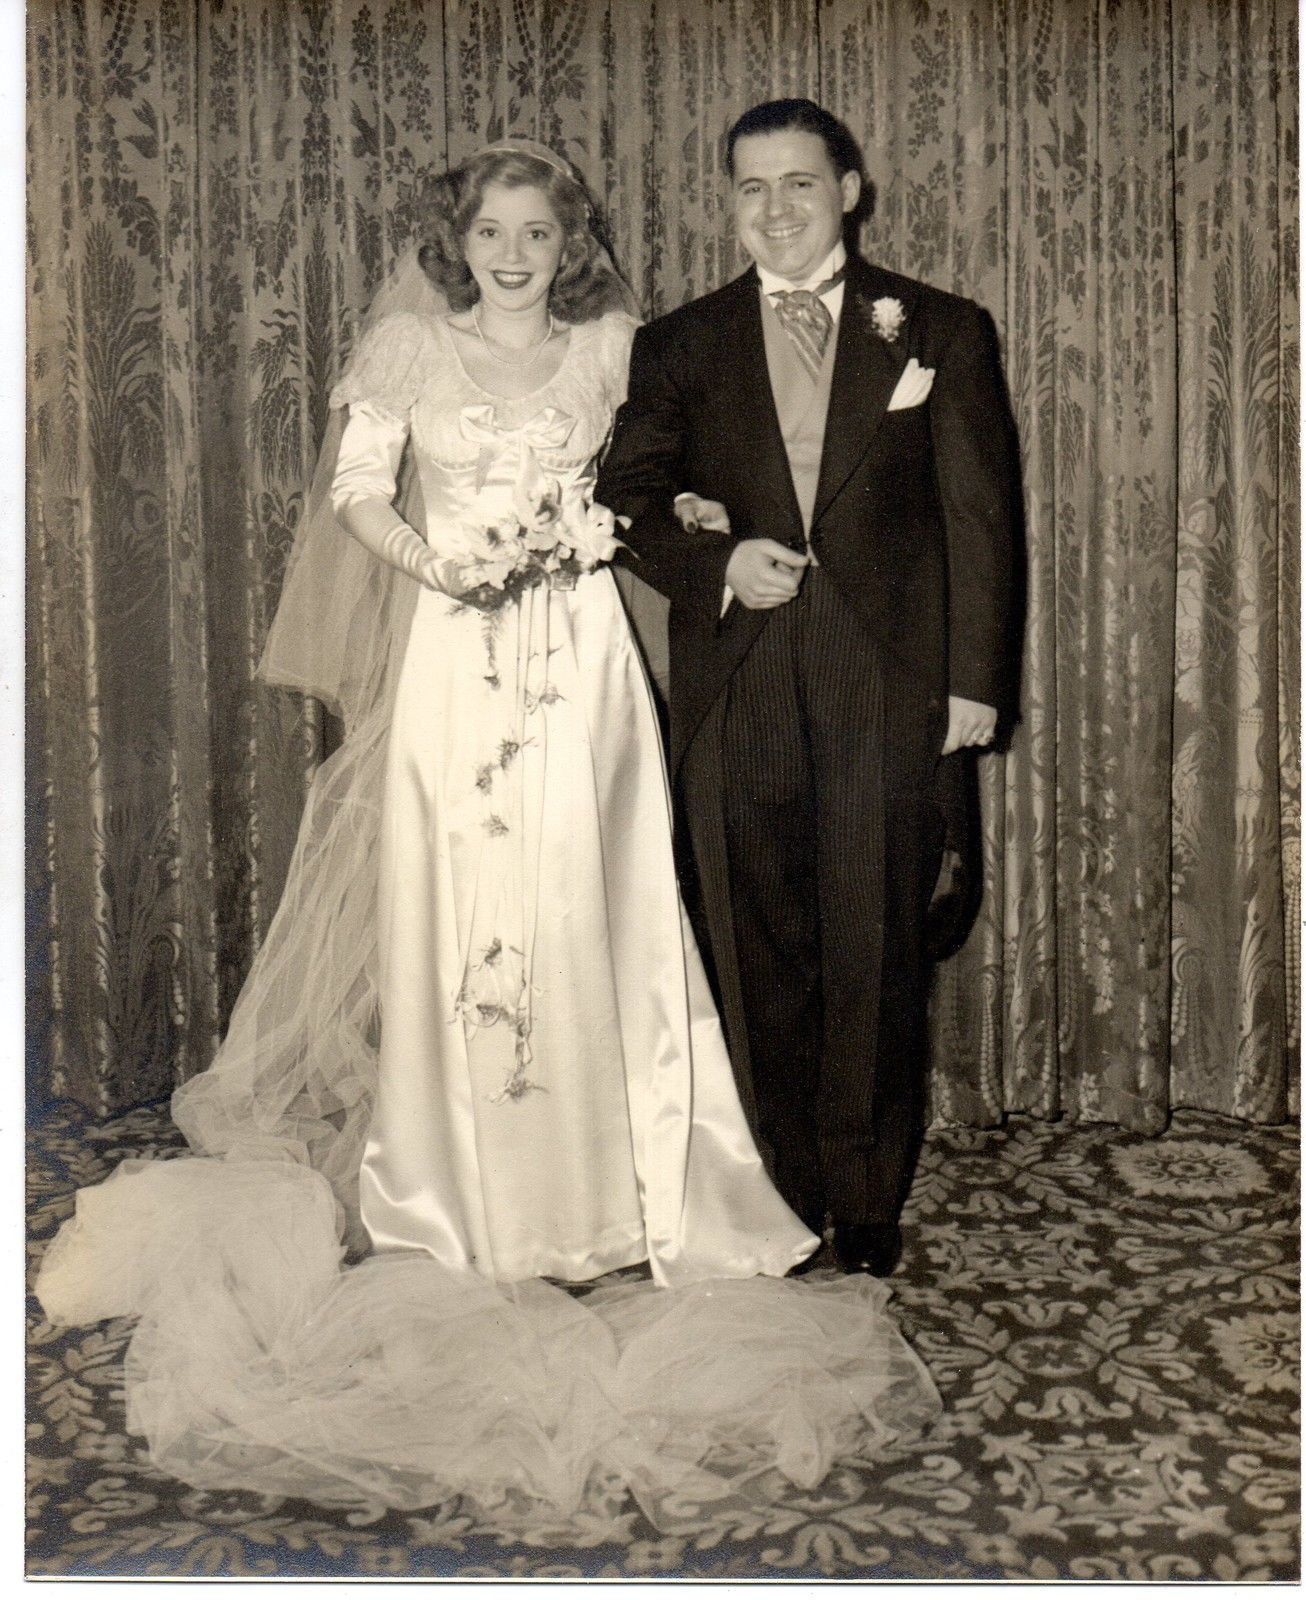 Wedding 1950 Portrait, Black & White Contemporary Image